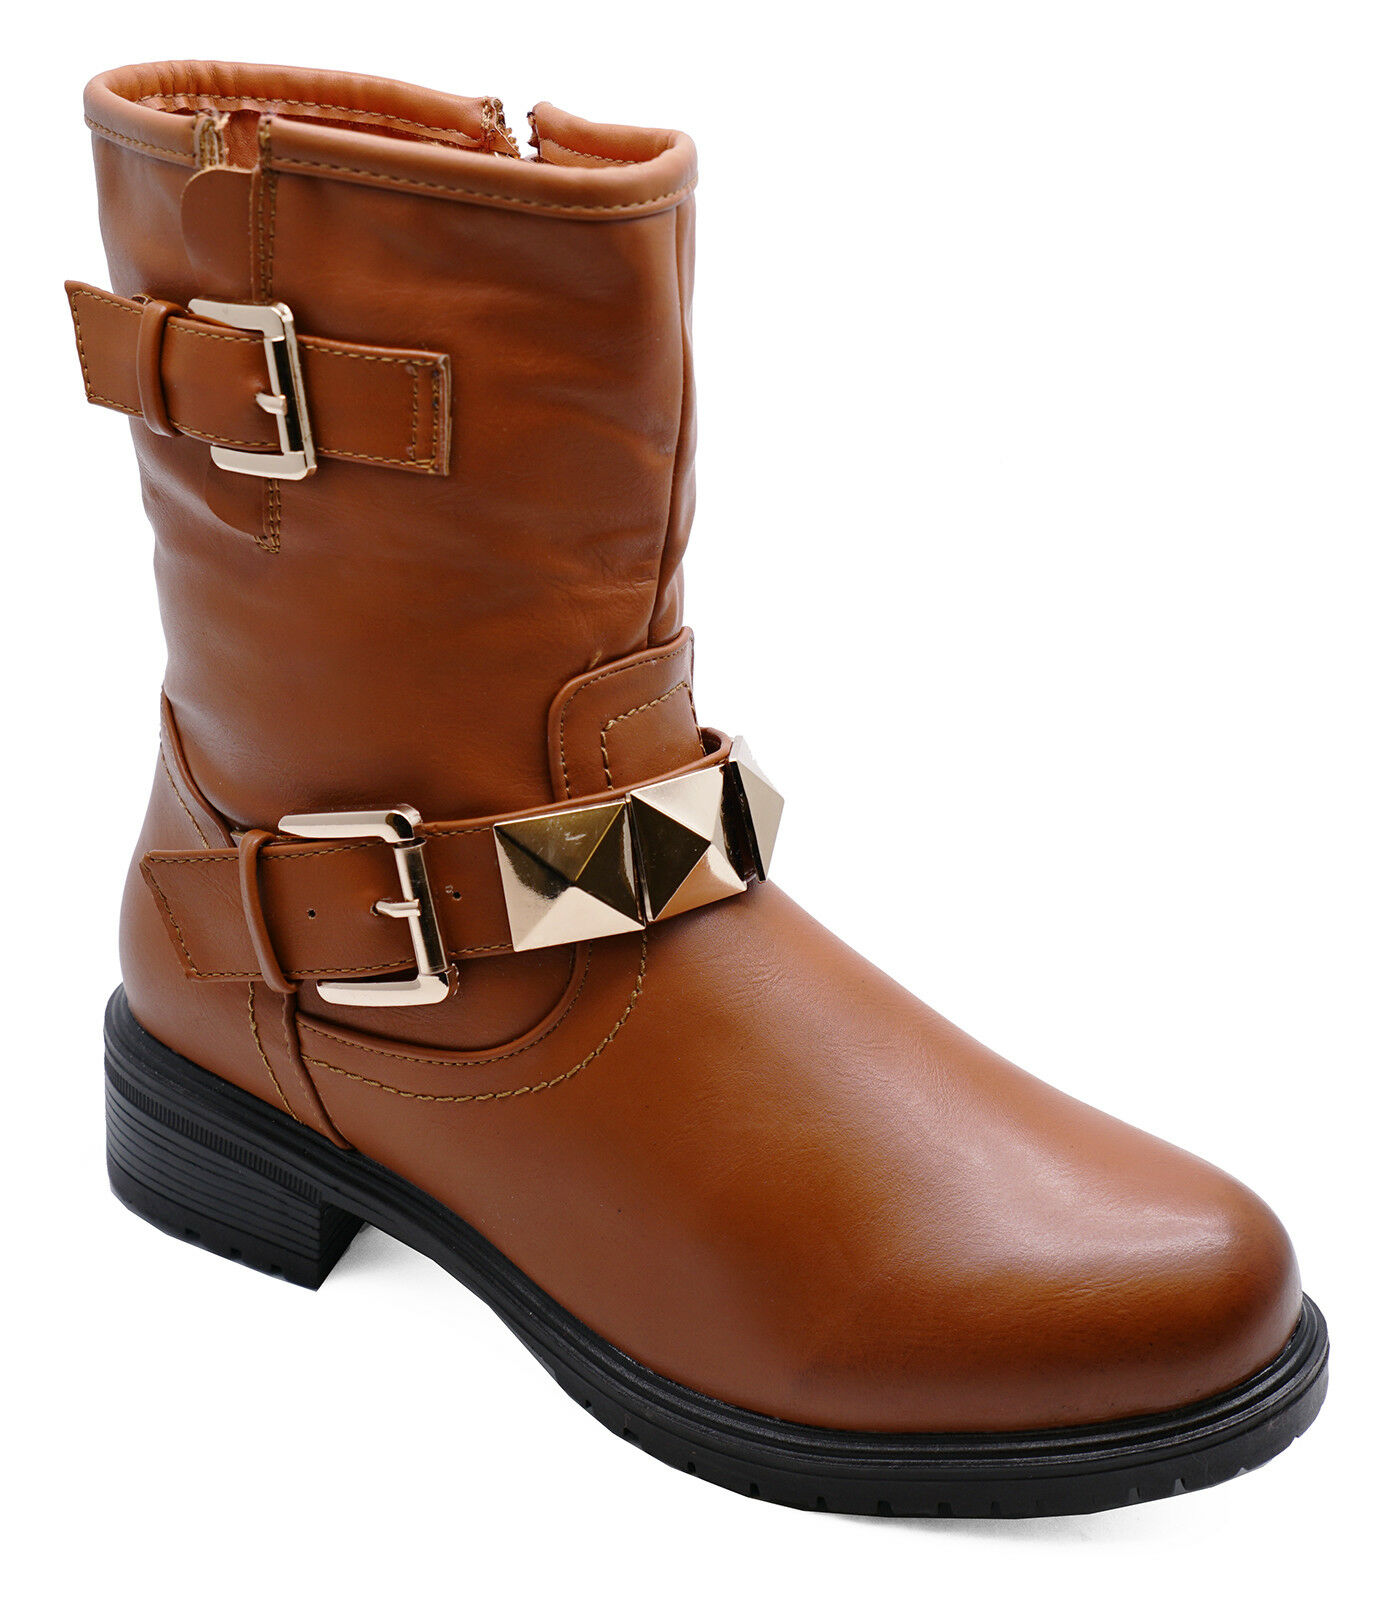 LADIES TAN LACE-UP FLAT DESERT ANKLE CALF WINTER WORK BOOTS SHOES SIZES 3-8